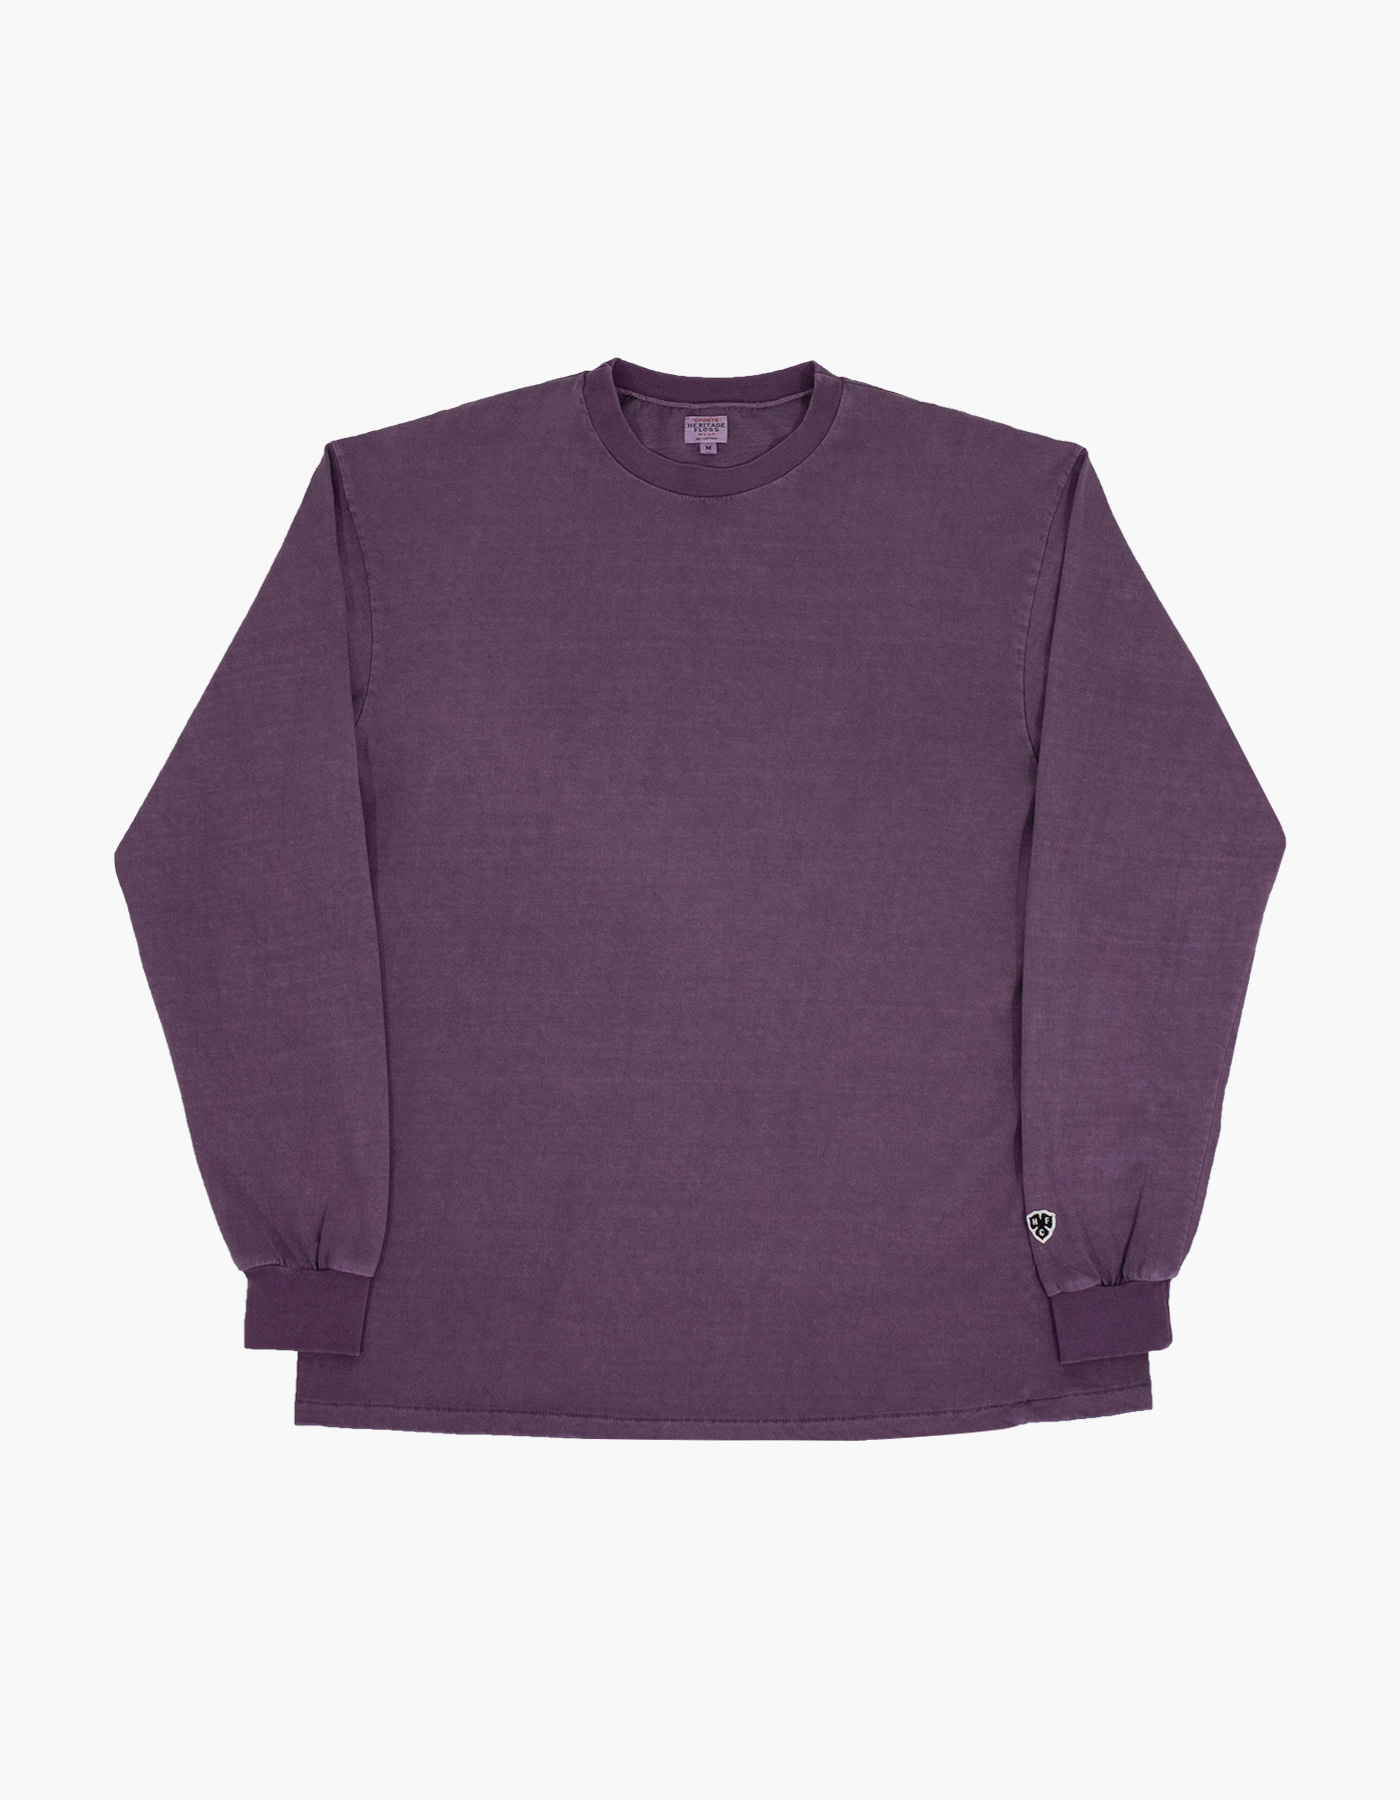 PIGMENT COMPACT YARN LONG SLEEVE / PURPLE